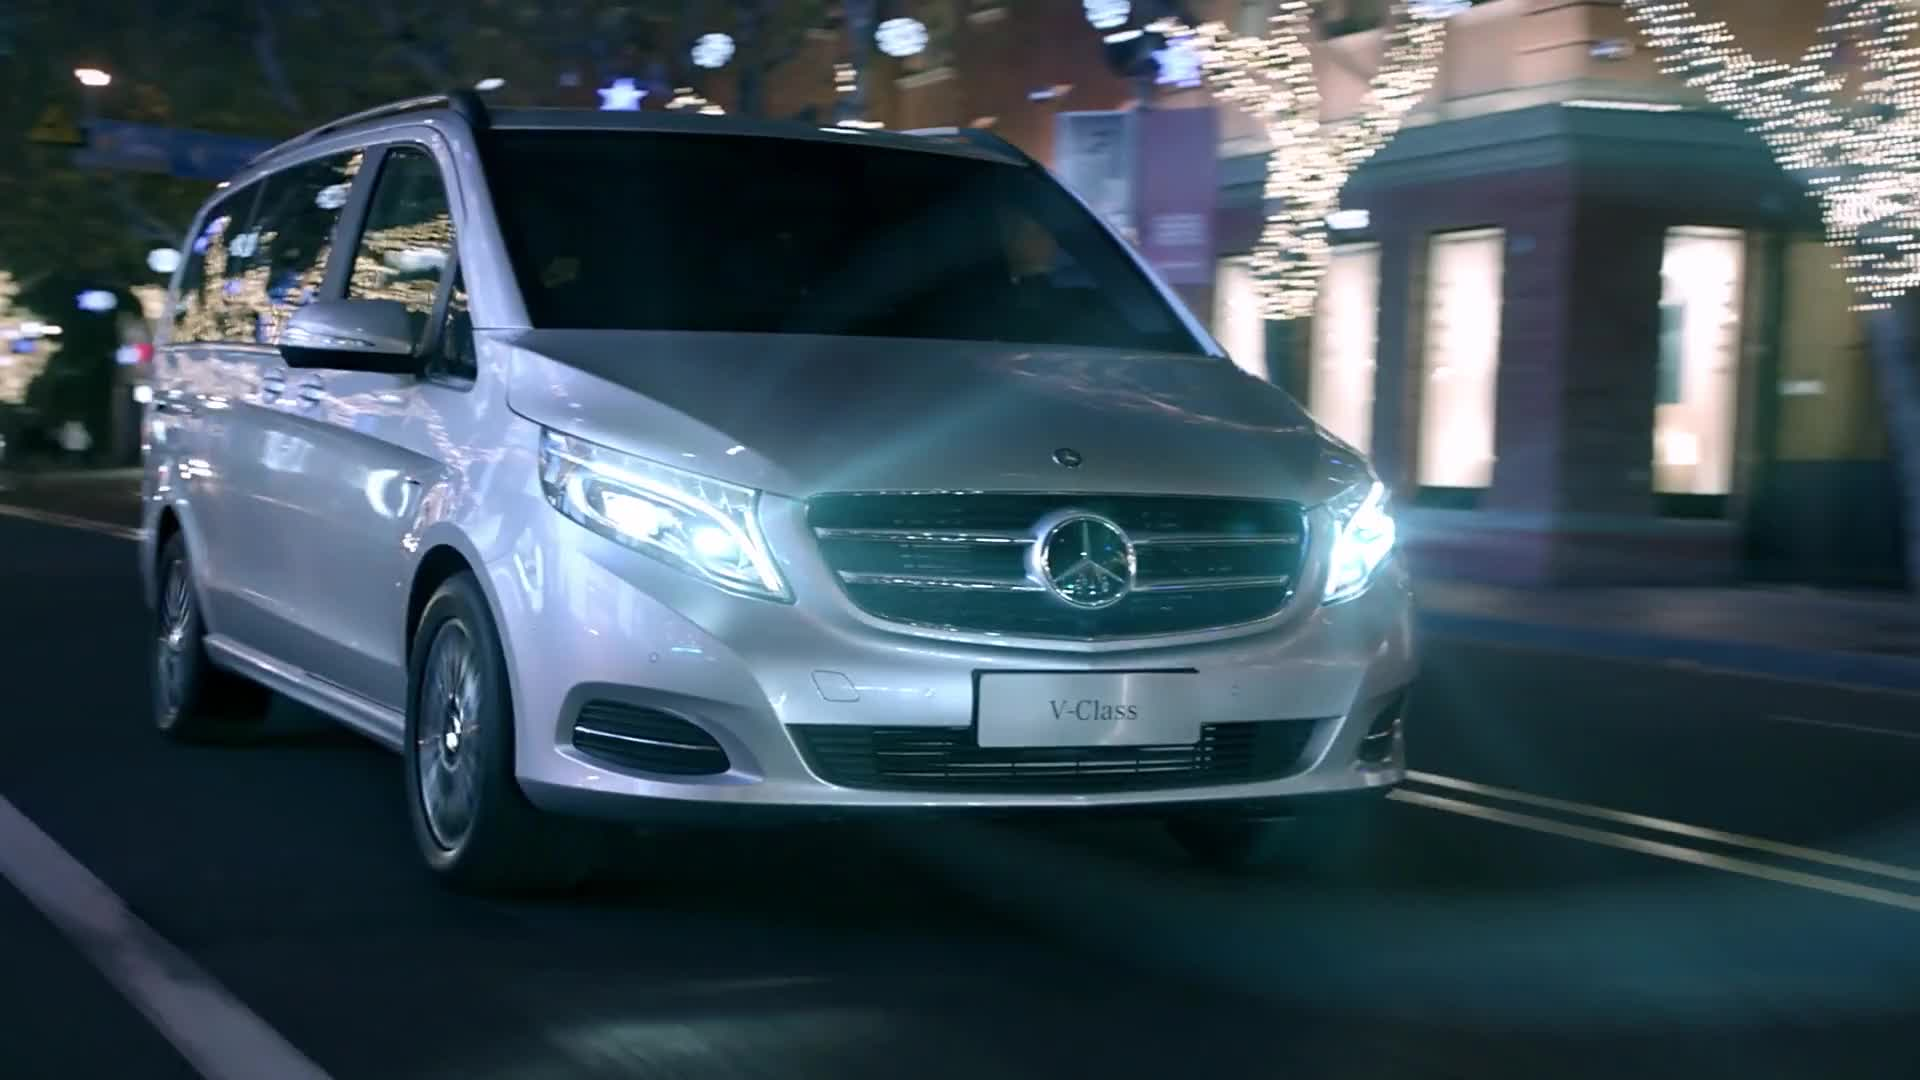 Mercedes Benz V Class Video Watch at Y8